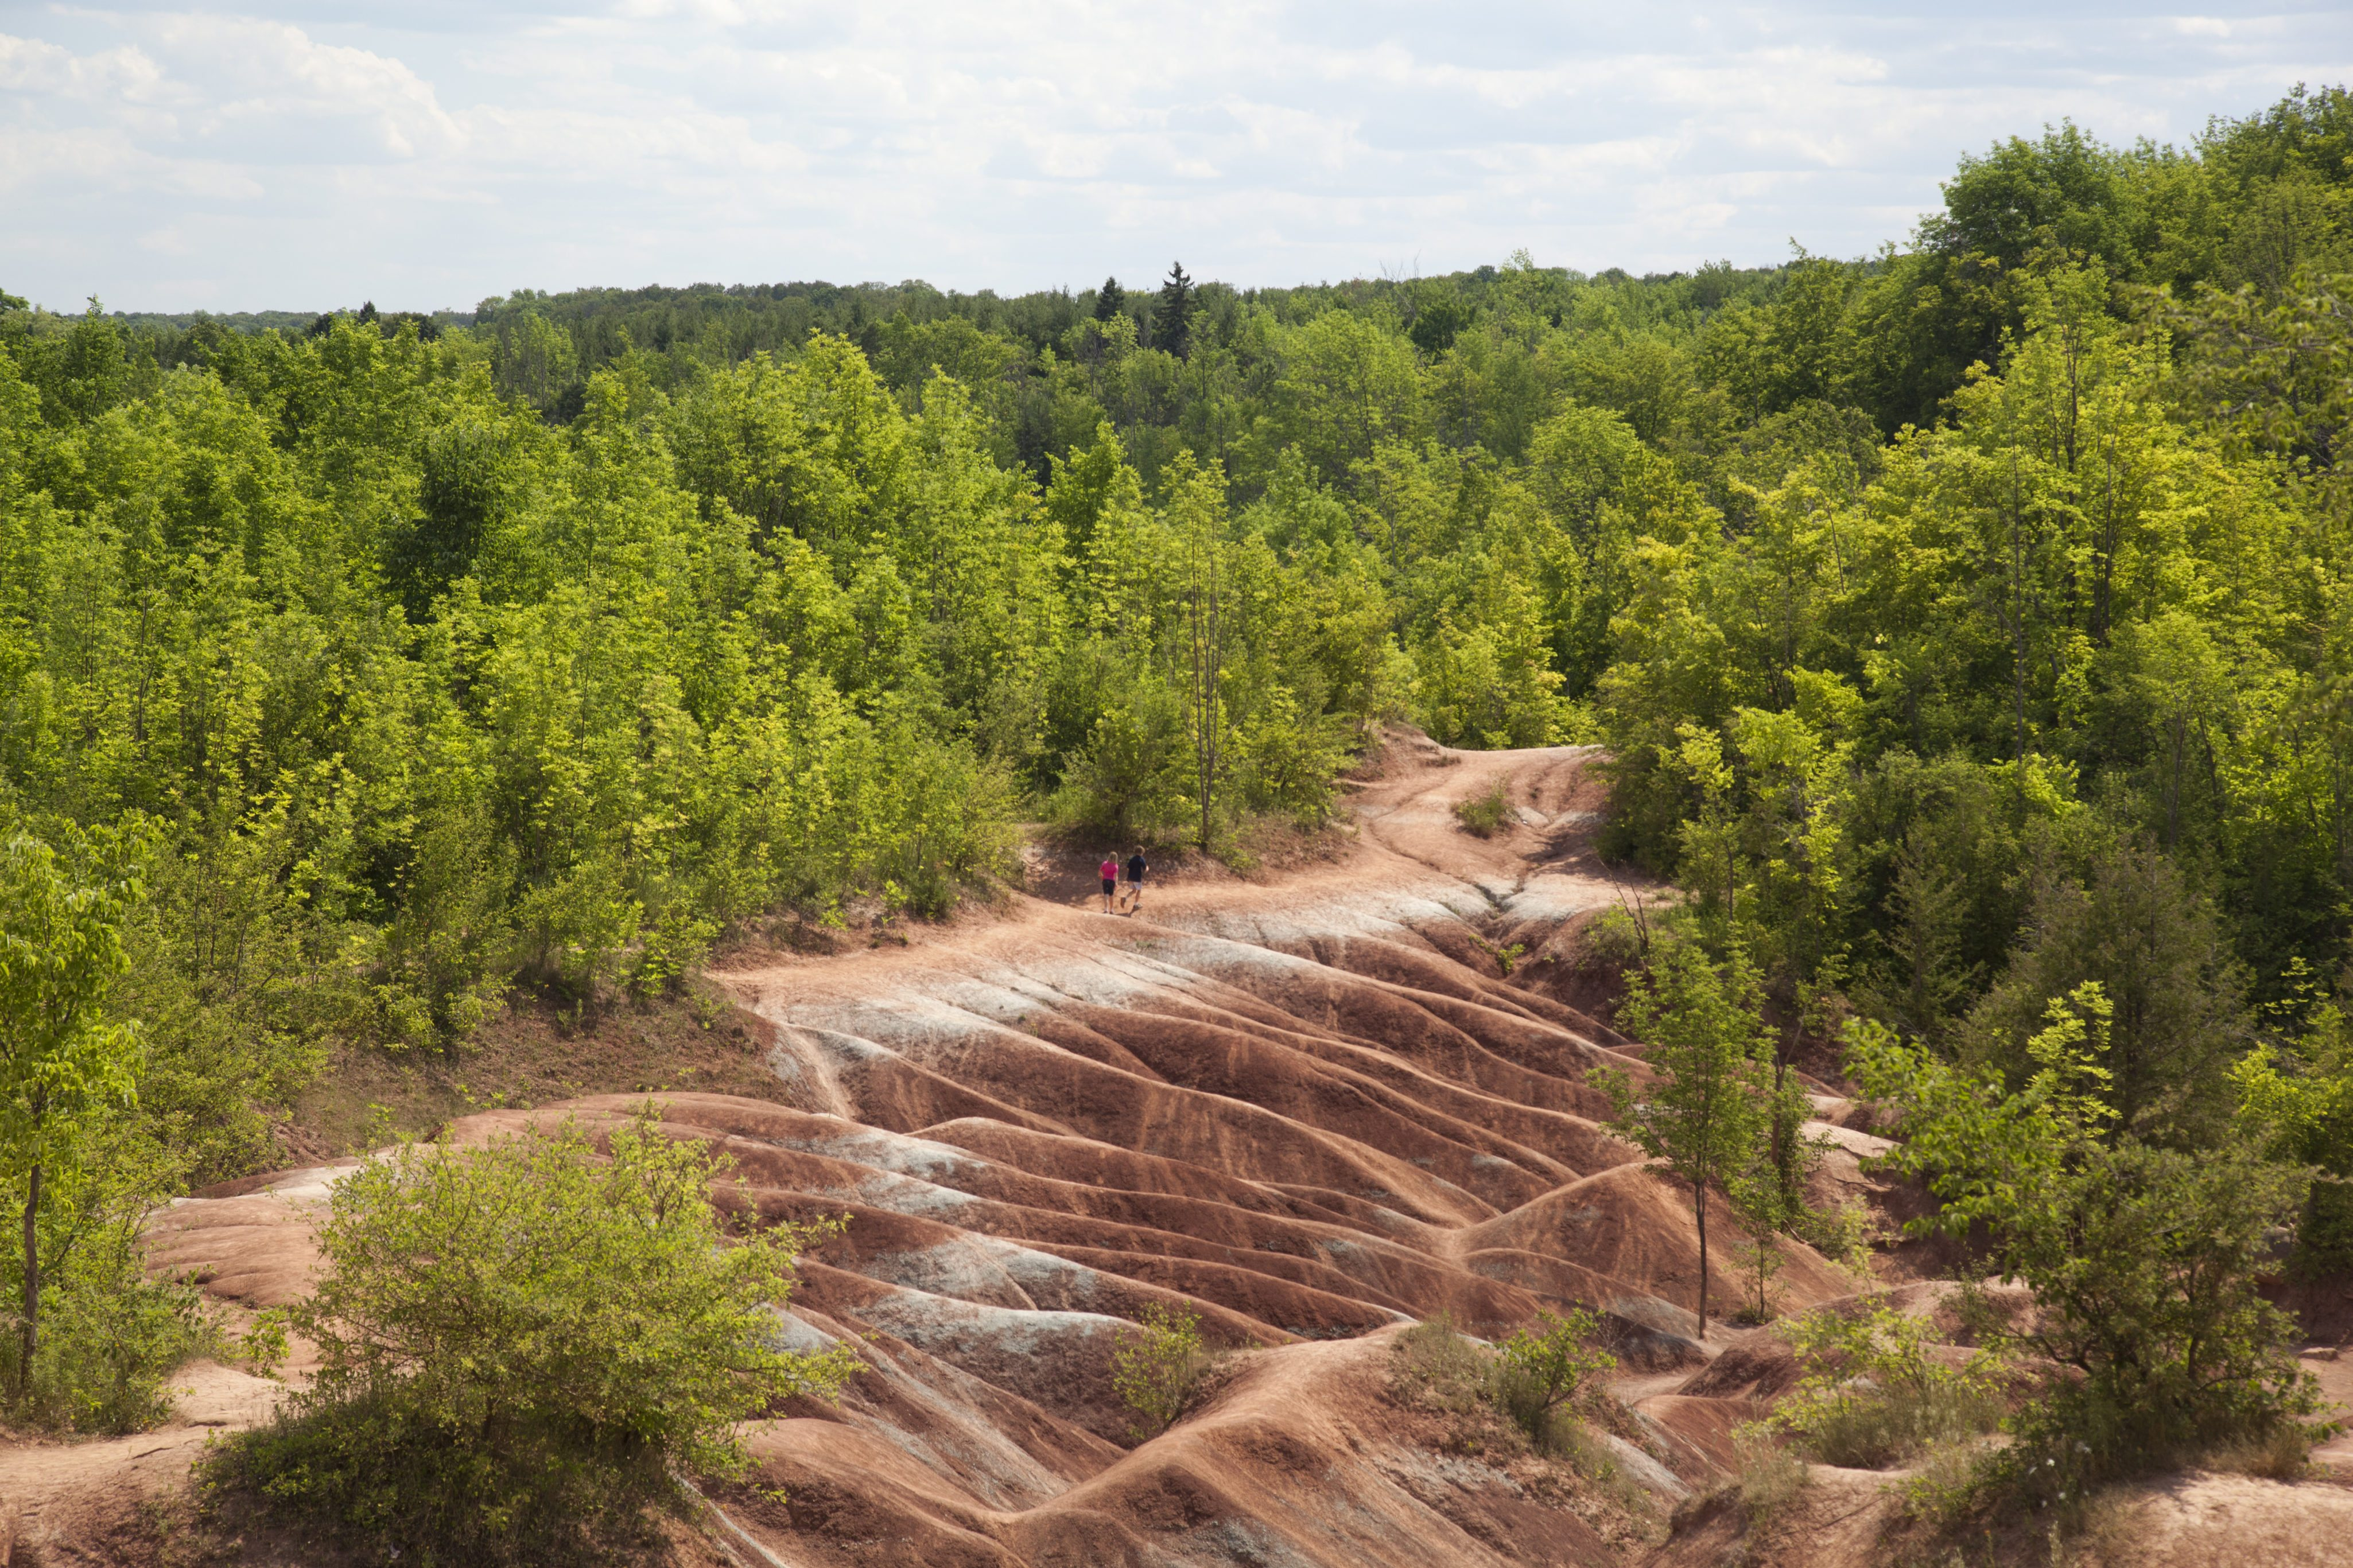 The Cheltenham Badlands on the Royal City Mill Run. Photo courtesy of the Friends of the Greenbelt Foundation.